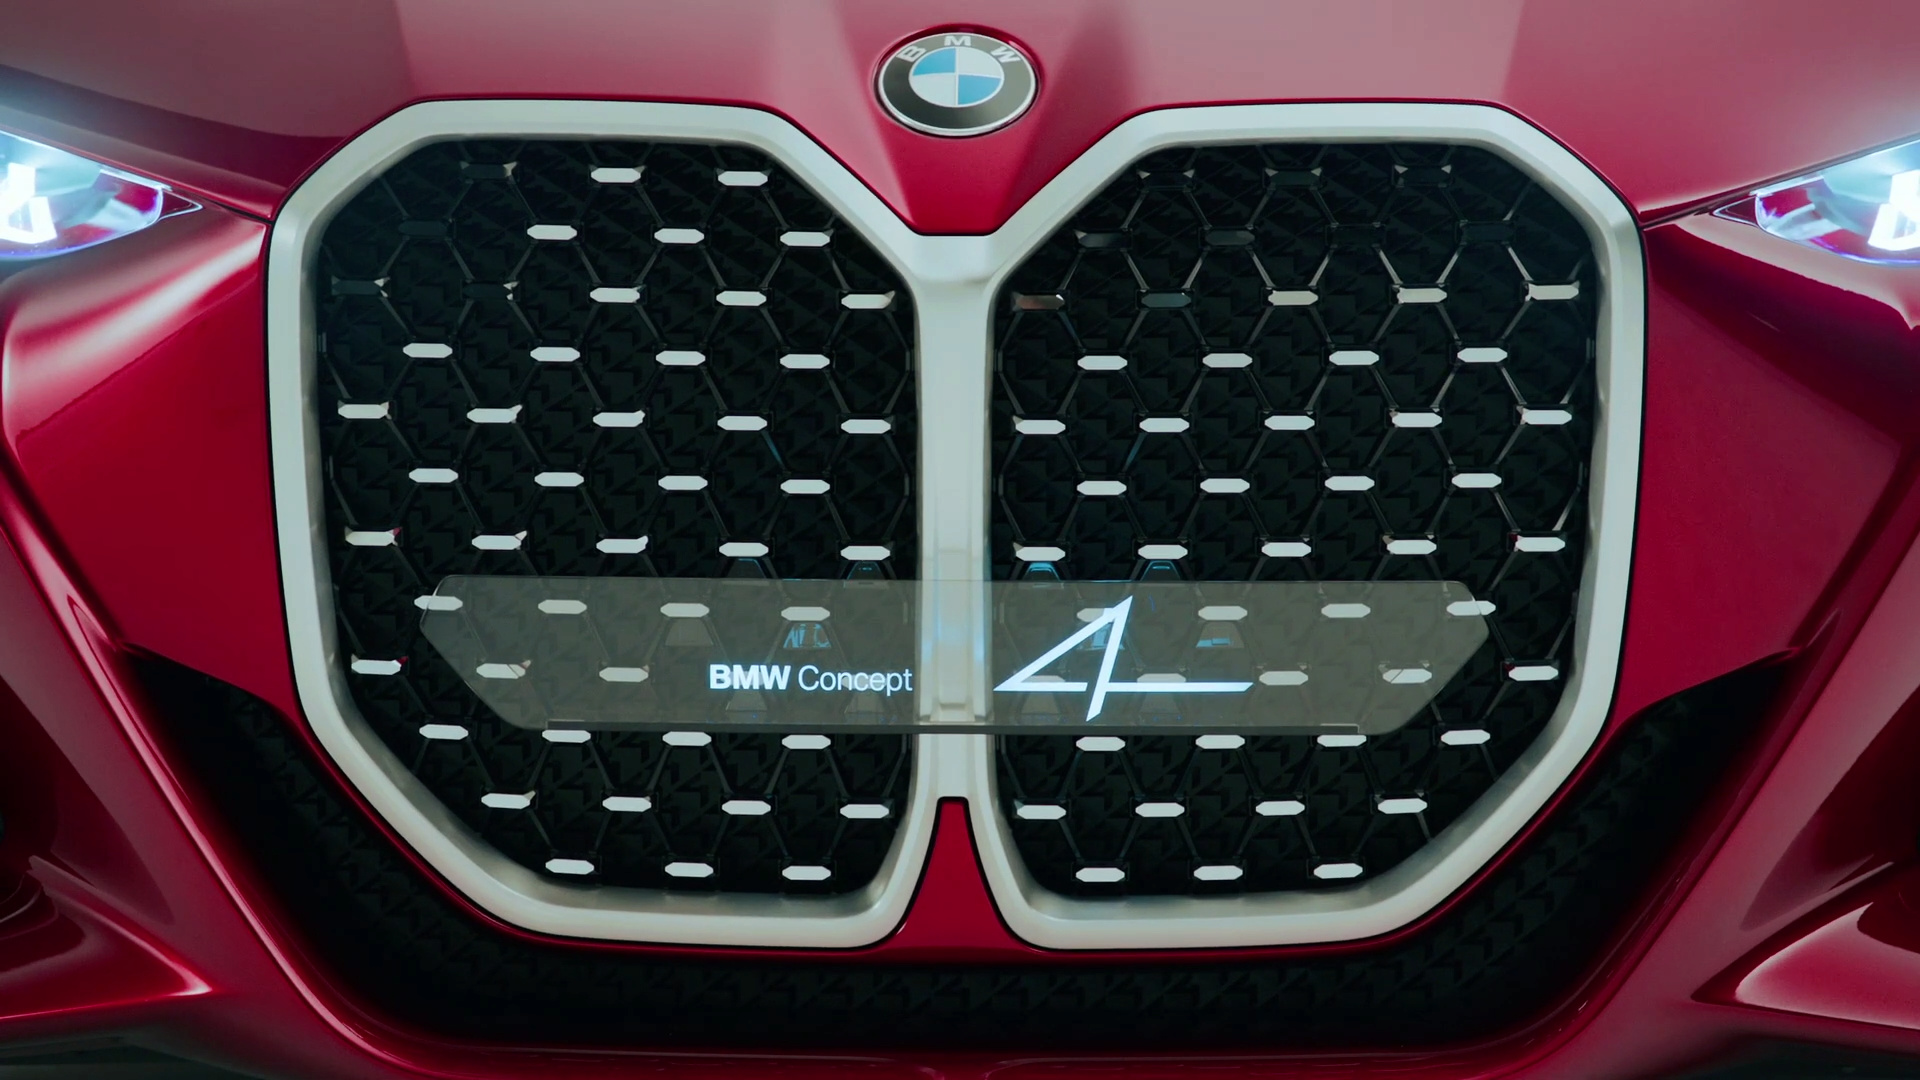 2019 - [BMW] Concept 4 Screen29